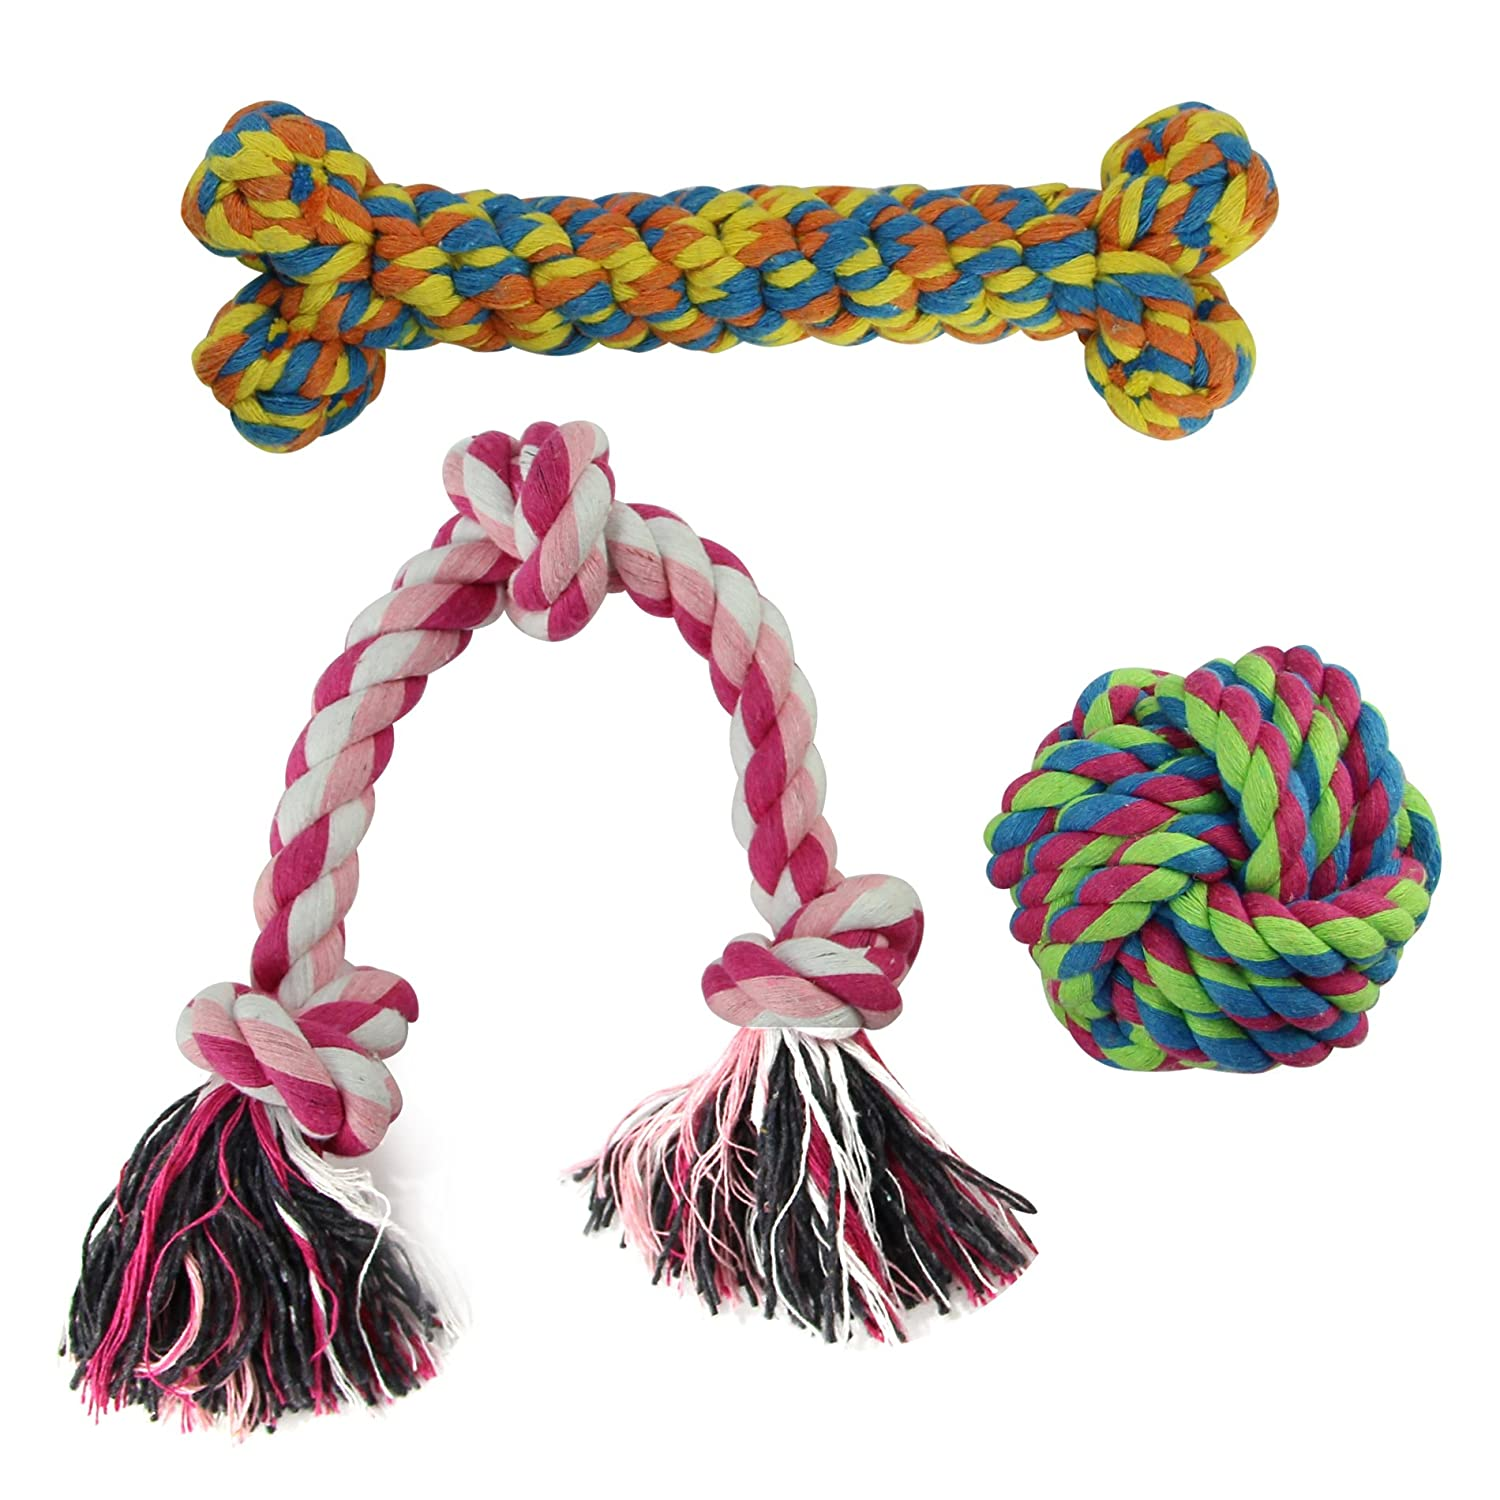 MEWTOGO Pet Chew Durable Rope Toys-Teeth Aids Cotton Ropes for Small Dogs-Pack of 3